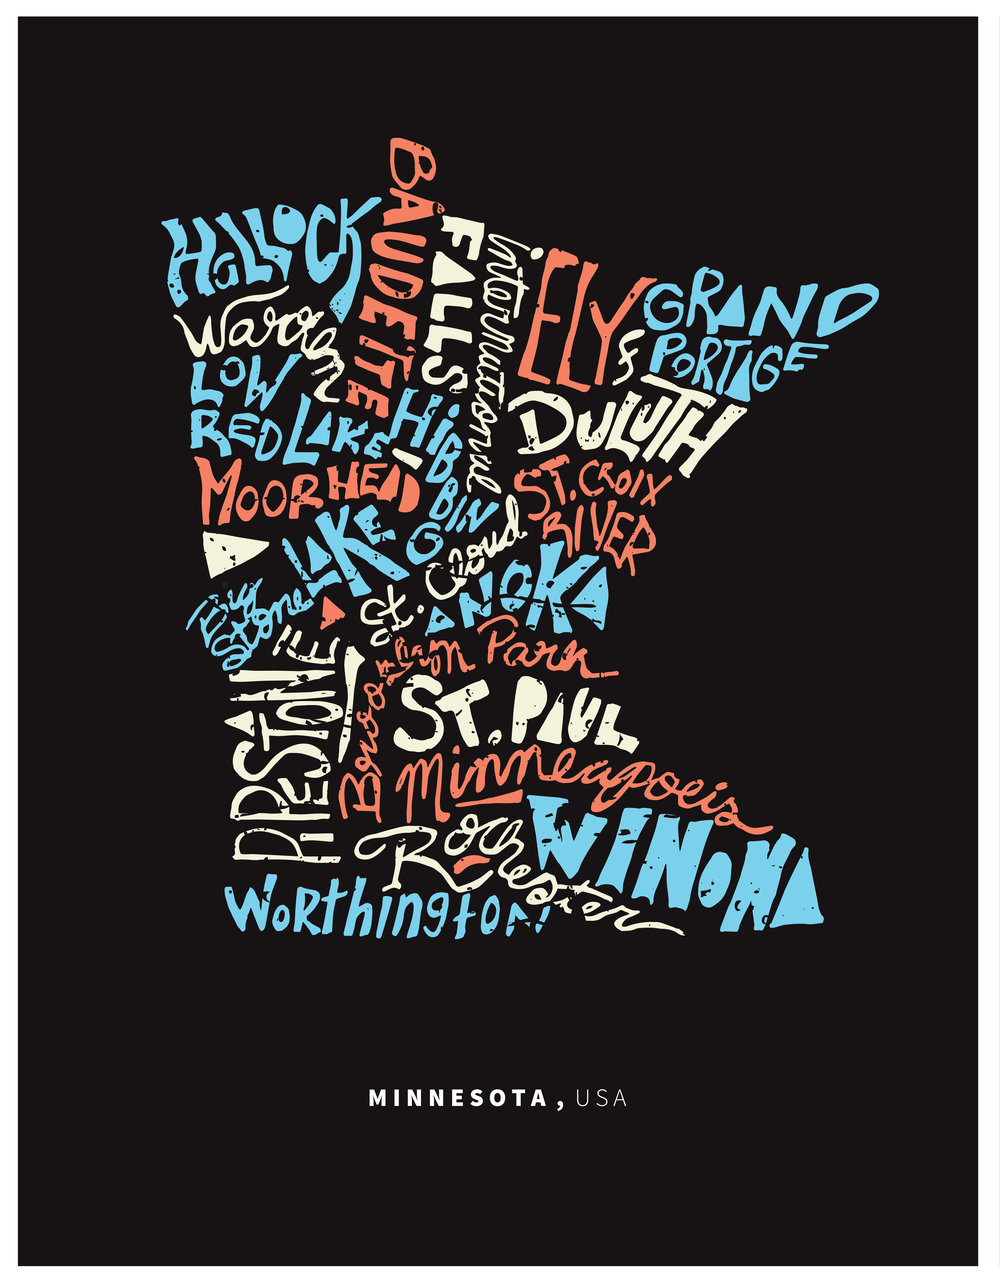 MINNESOTA_colored-01.jpg